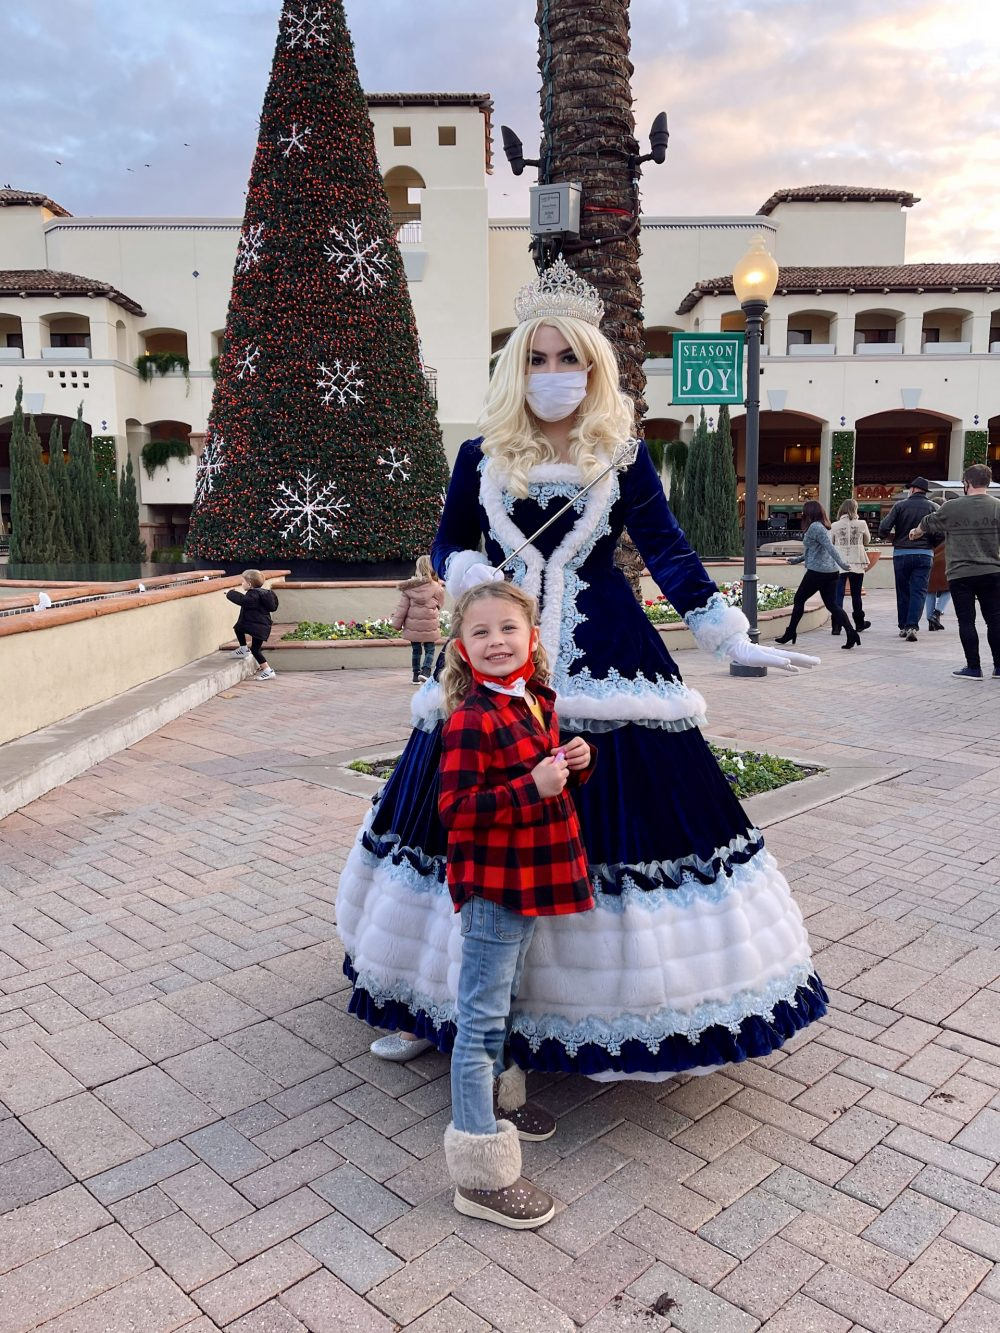 One of the Best Year Round Sun Destinations for Large Family Friendly Travel, Scottsdale Arizona. Holiday Winter Fun at Christmas at the Princess at the Fairmont Scottsdale Princess. |Guide by popular Florida travel blog, Fresh Mommy Blog: image of a little girl standing with a ice princess.